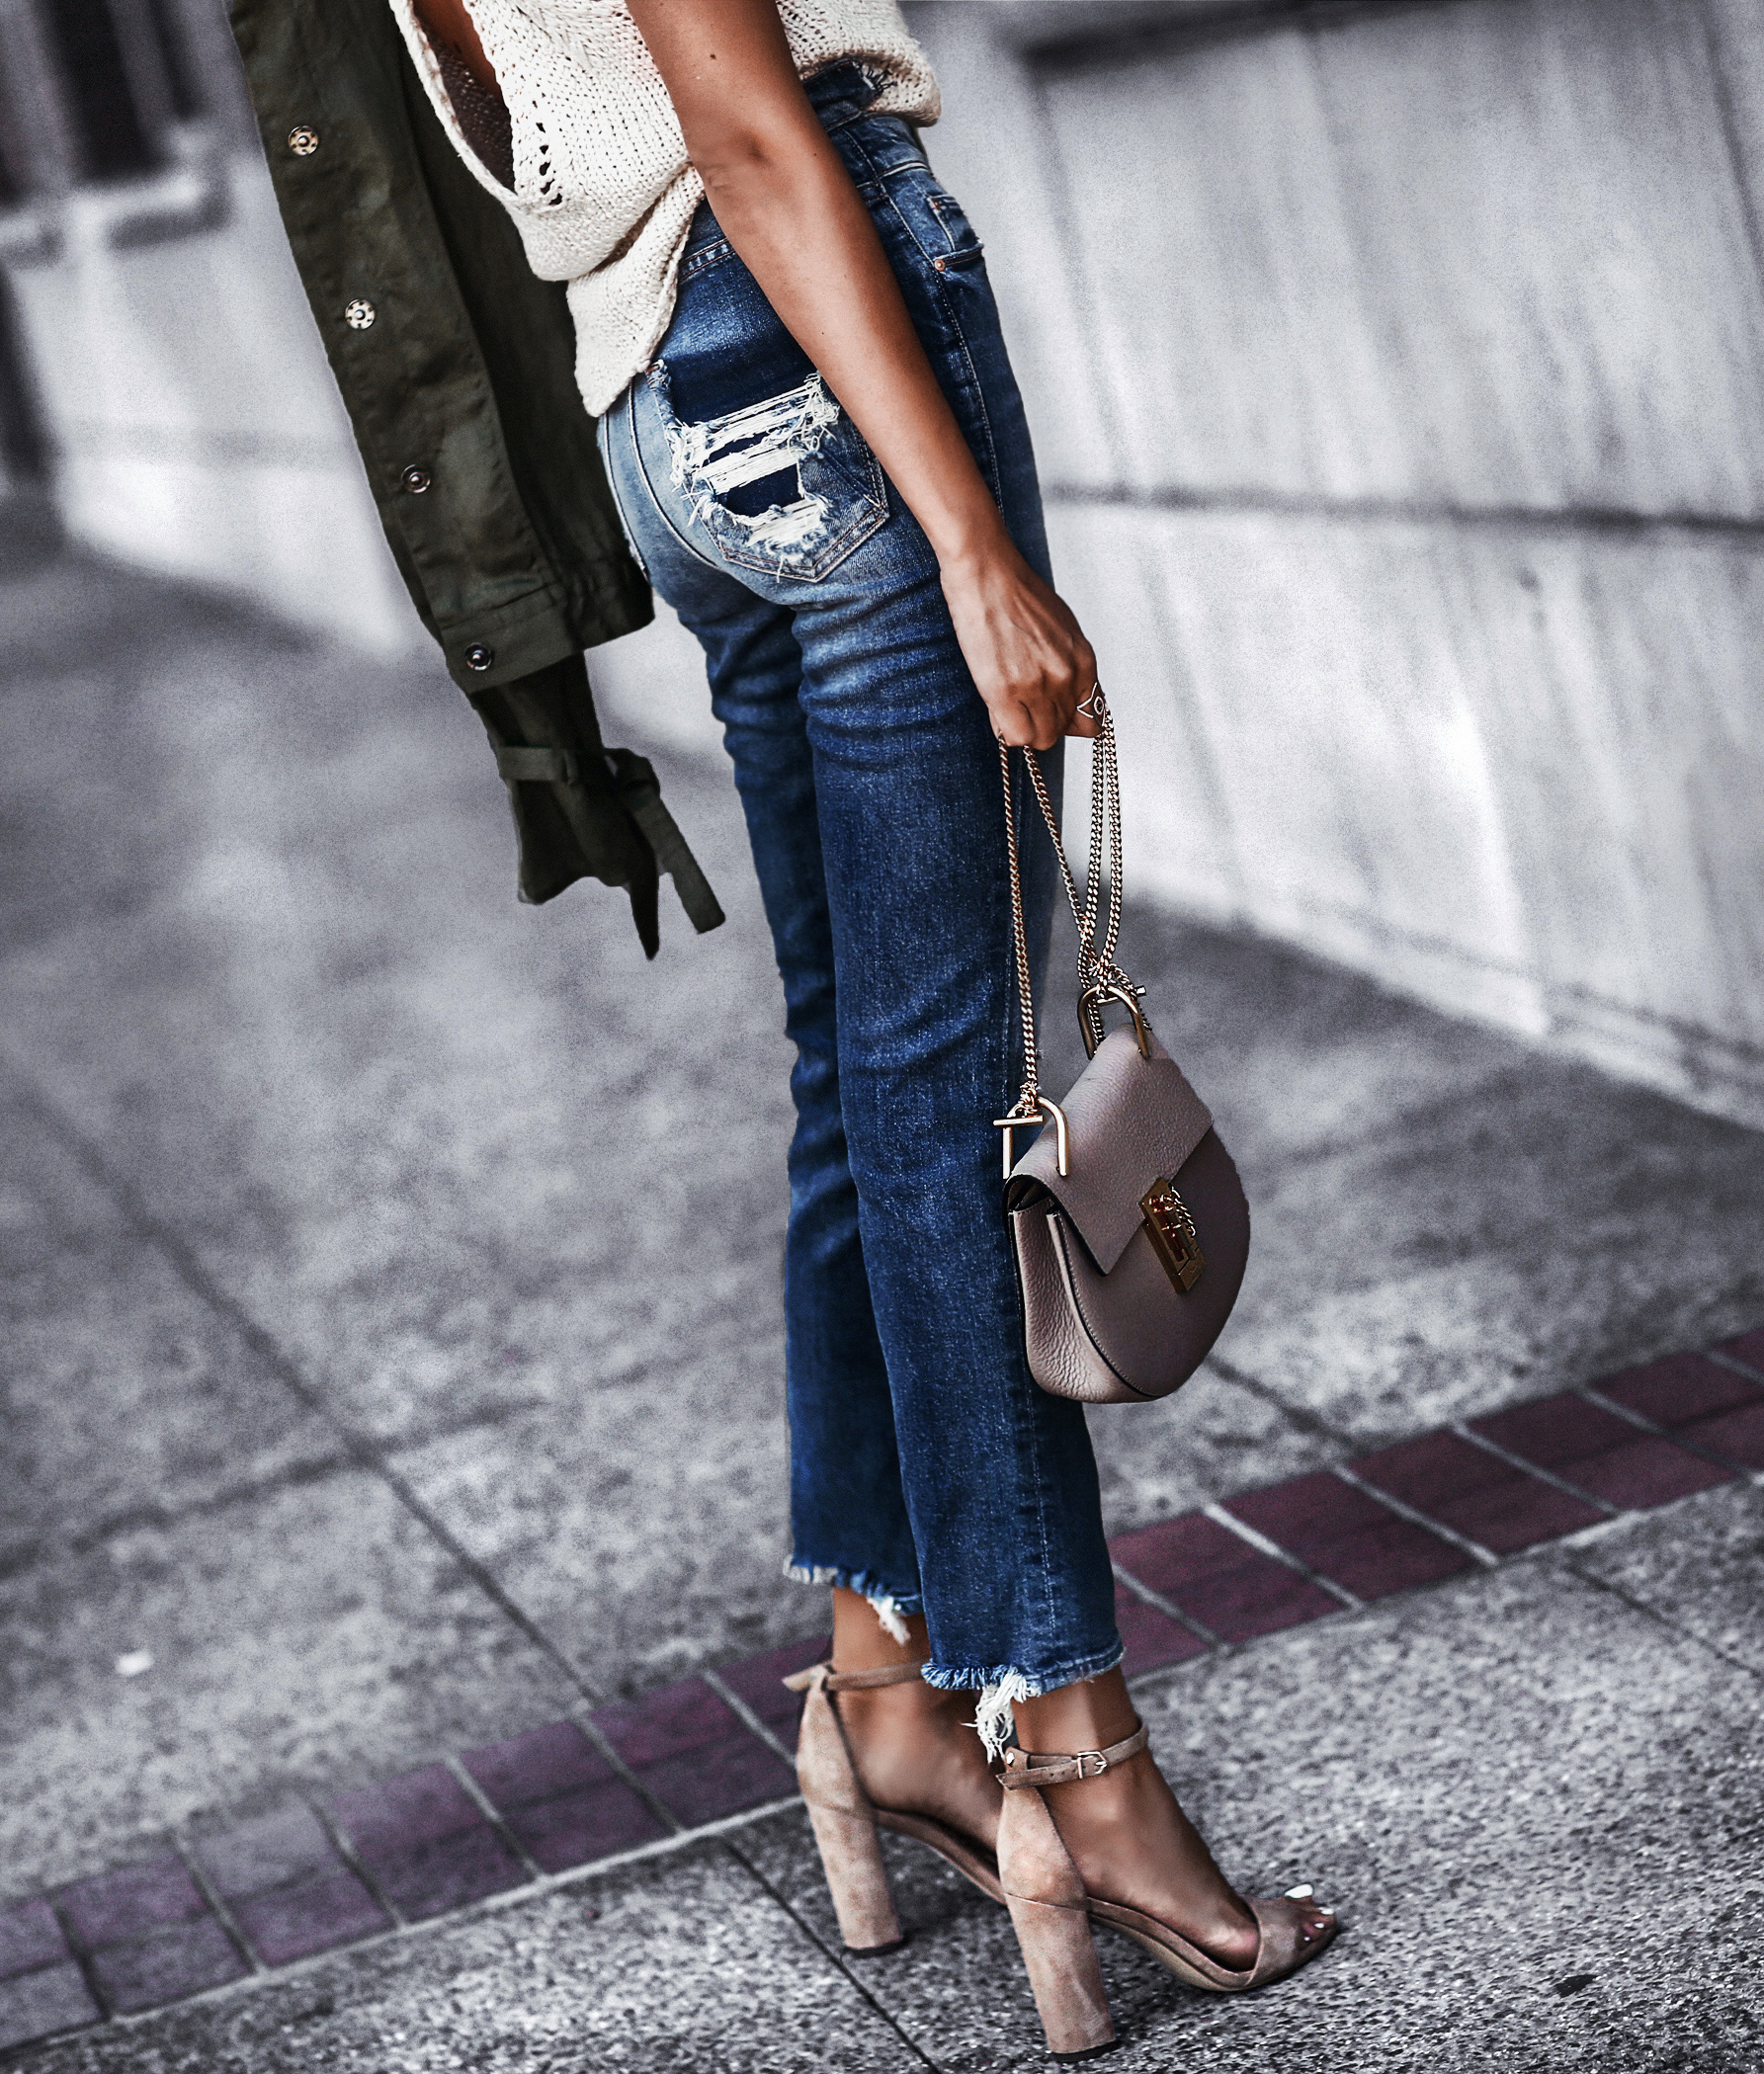 distressed high waisted jeans, nude suede sandals, knit tank top, army green jacket